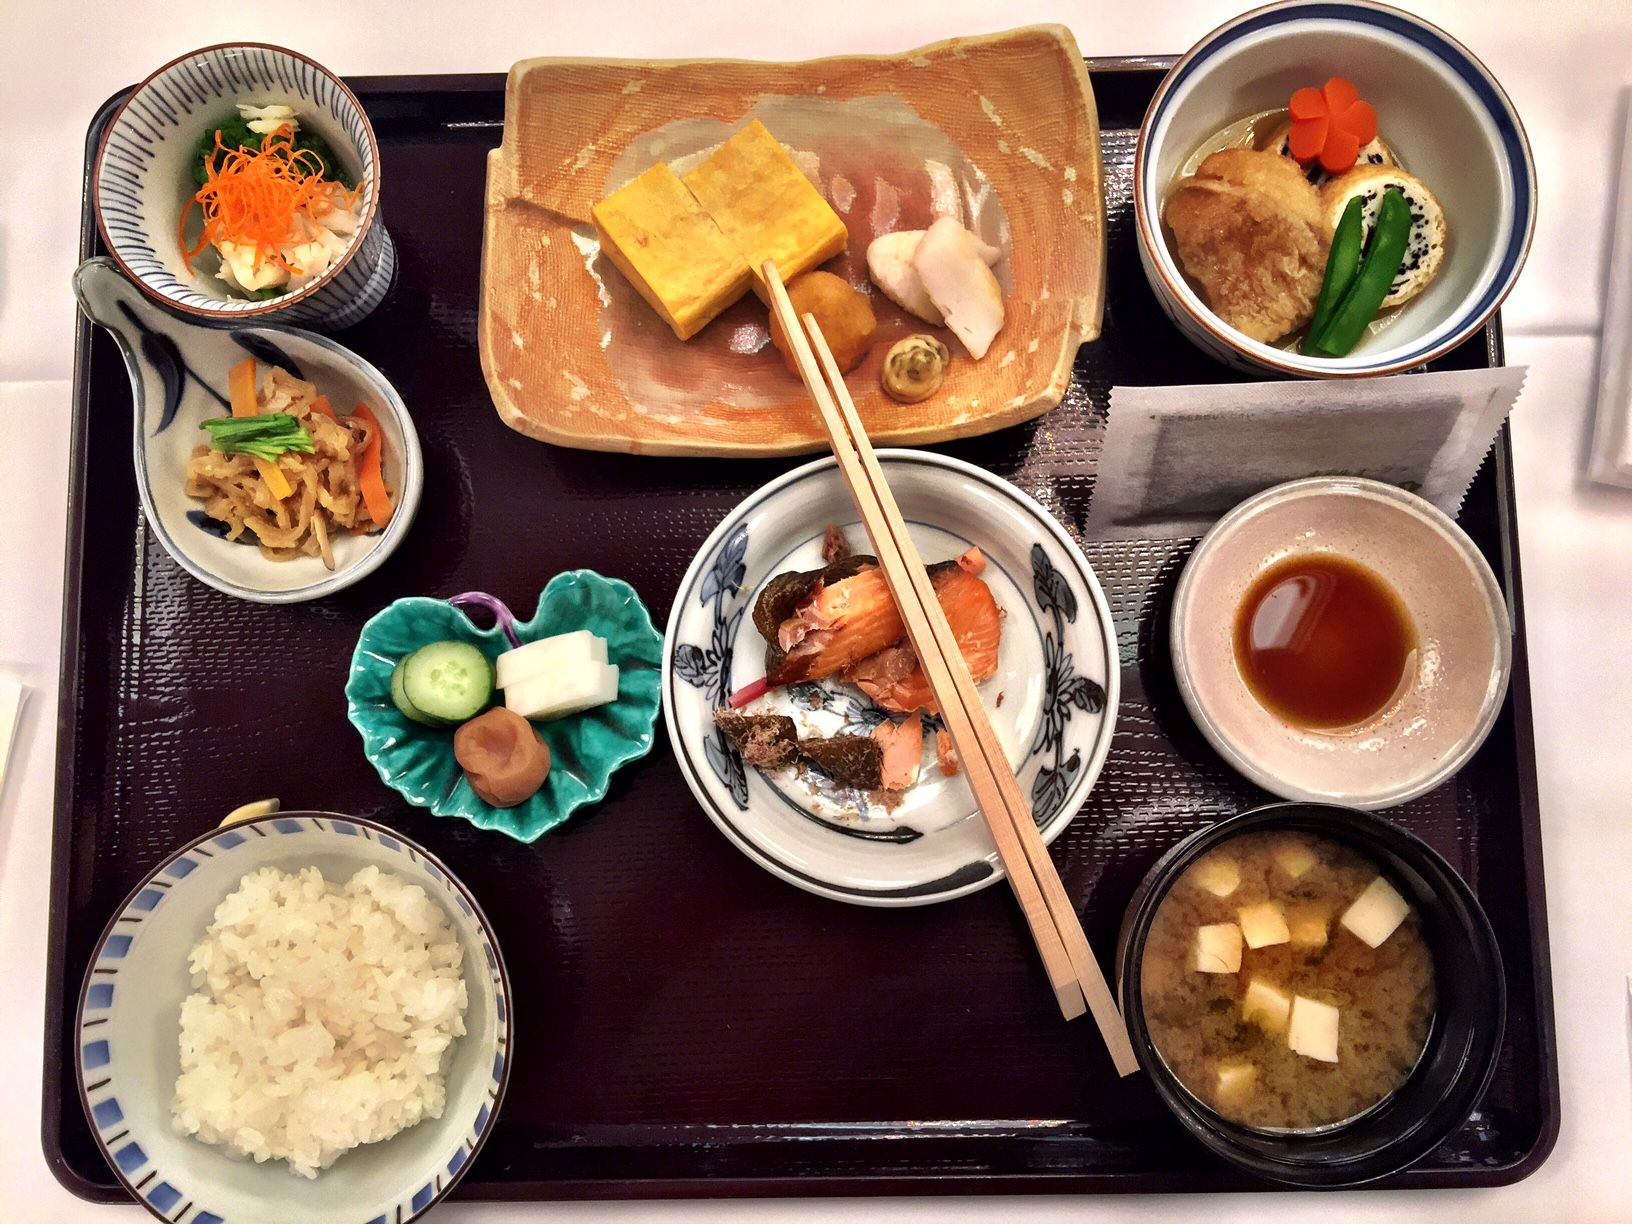 ZEPPIN(絶品) #3/WACHOSHOKU(和朝食) Japanese Breakfast Rules!